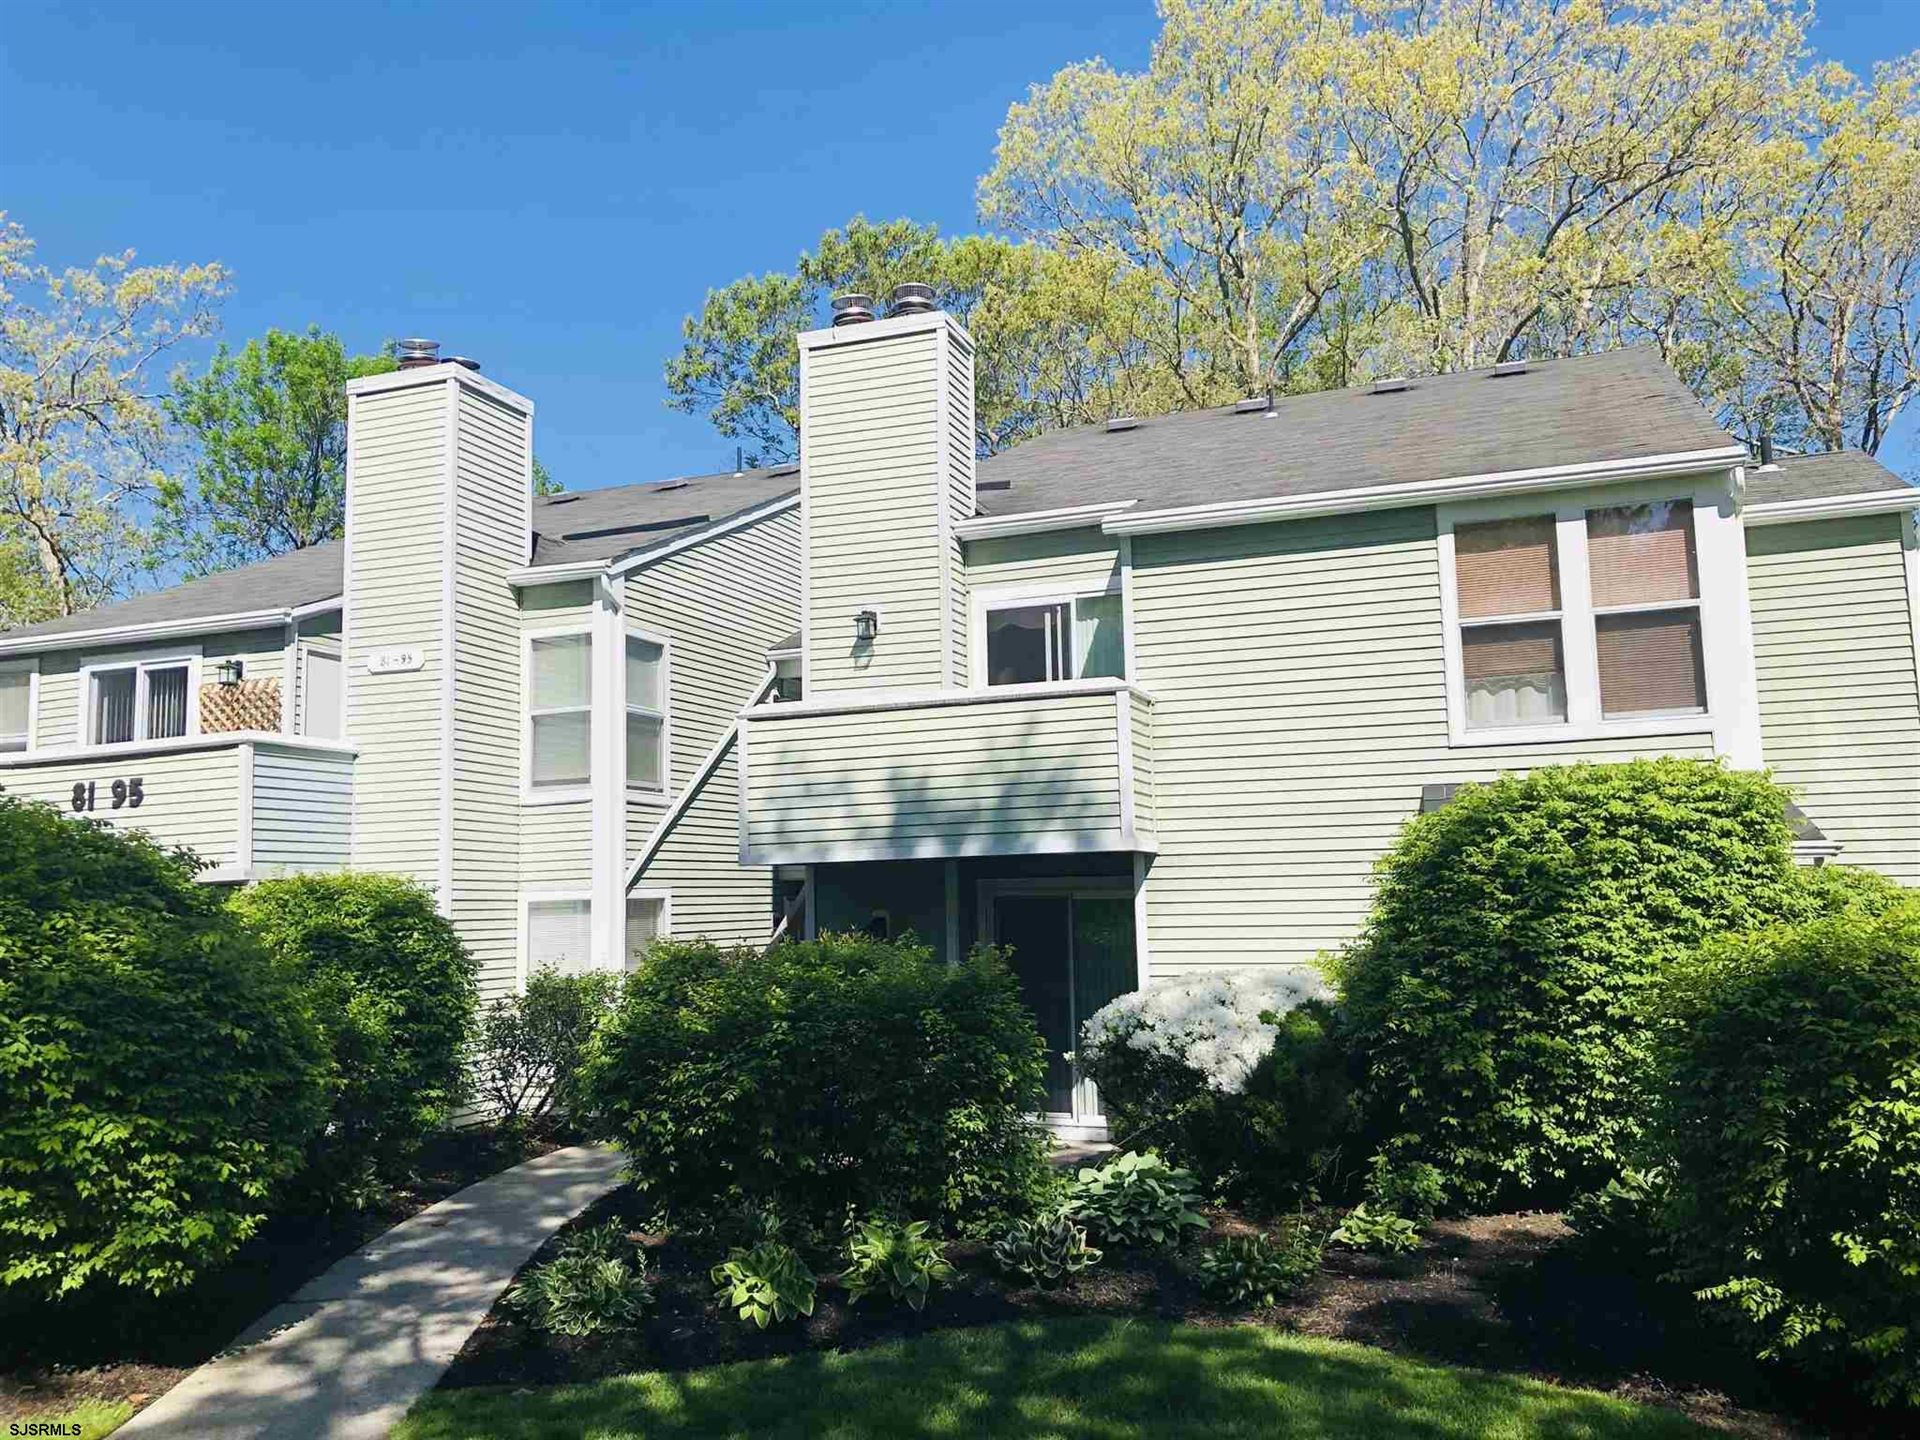 83 Pheasant Meadow Dr Dr, Galloway, NJ 08205 - #: 552761